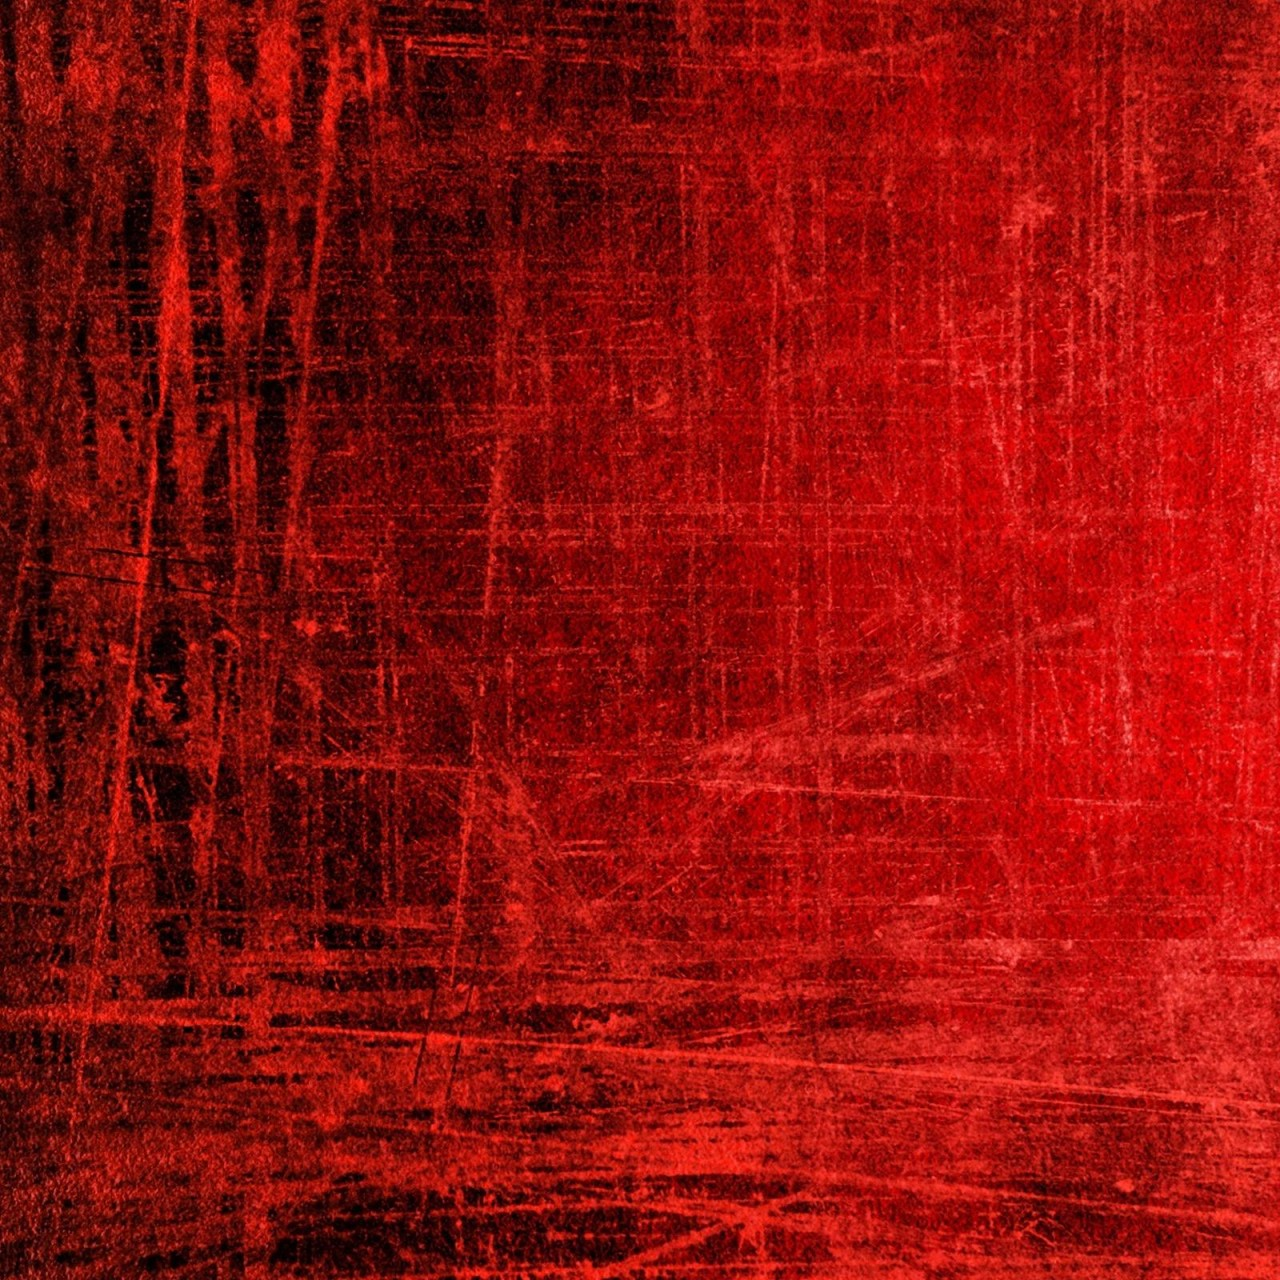 red backgrounds wallpaper